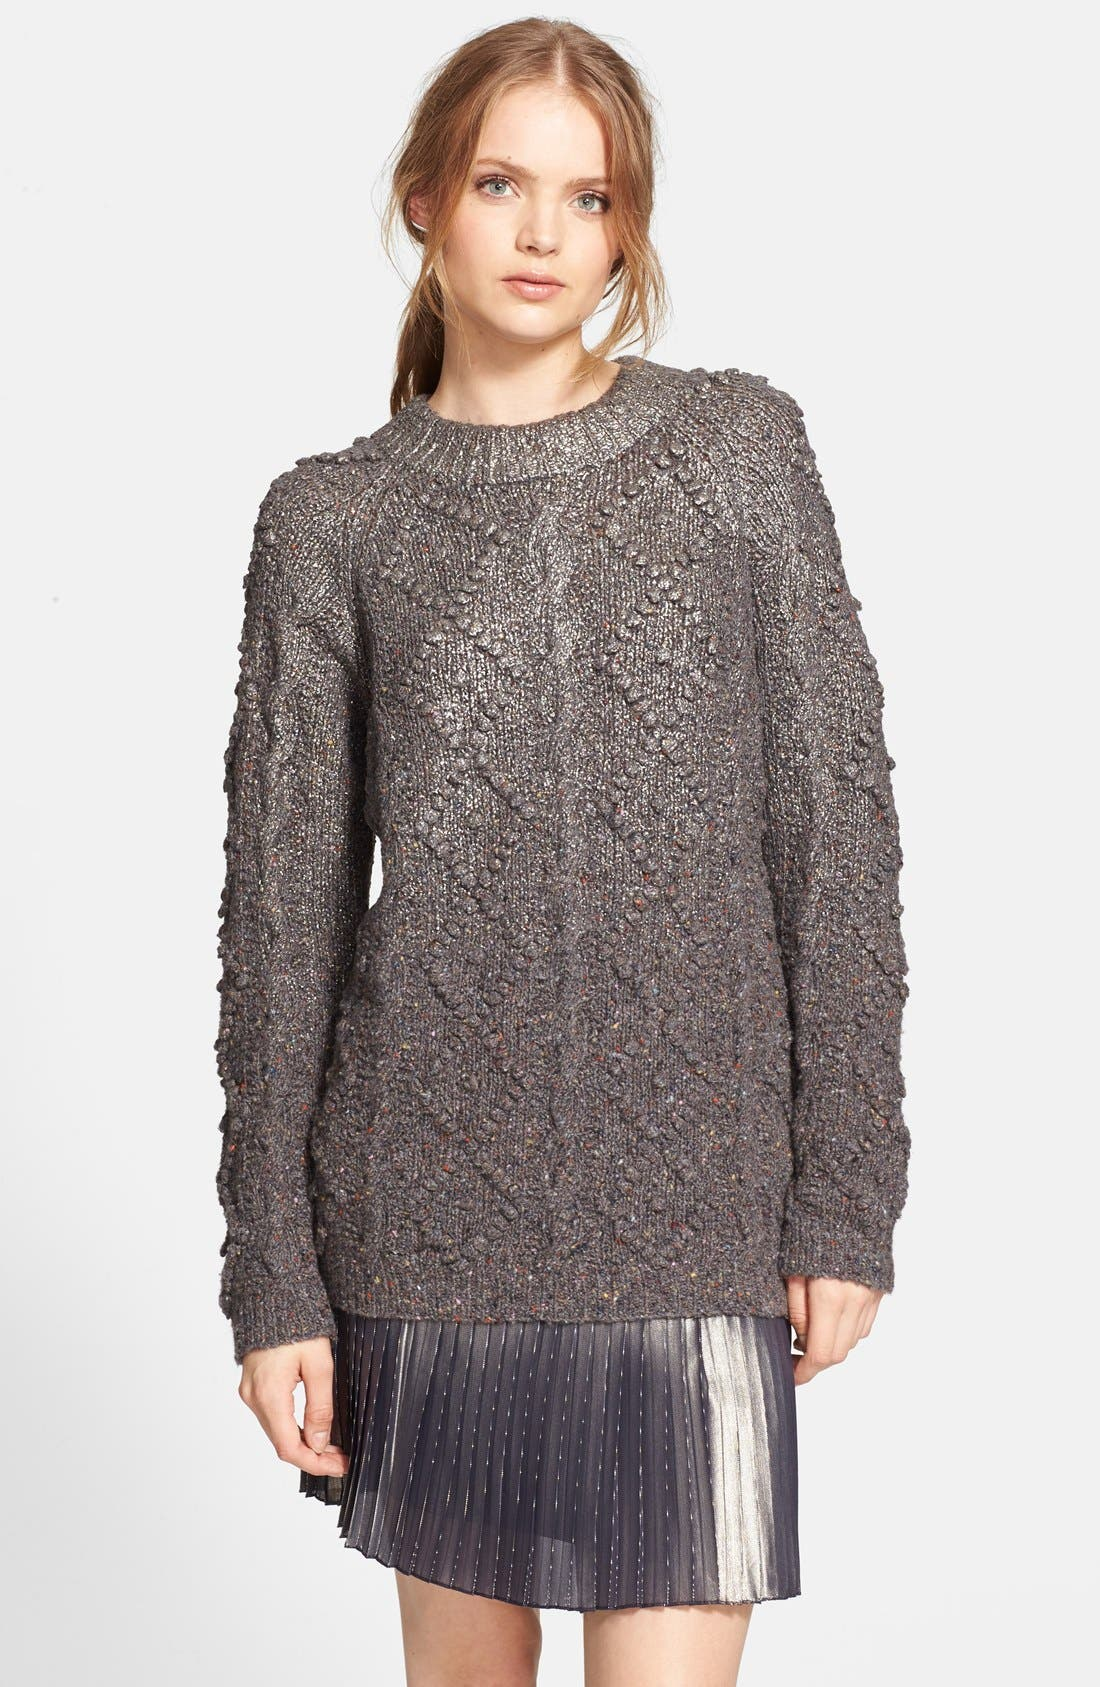 Alternate Image 1 Selected - Tory Burch 'Shawn' Metallic Wool Blend Tunic